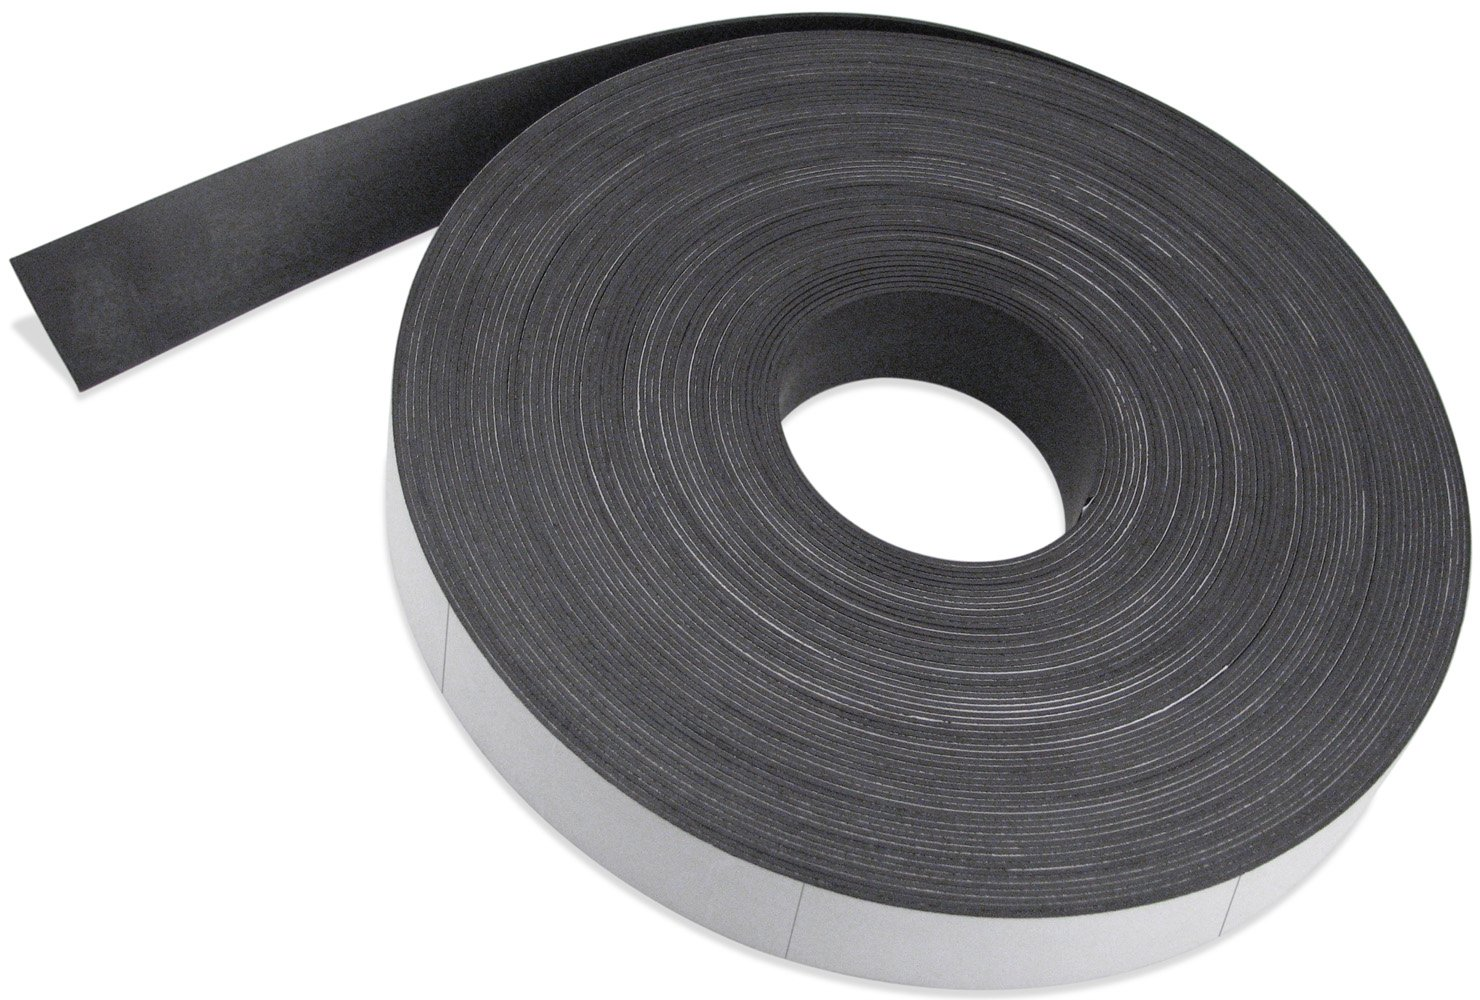 Master Magnetics Flexible Magnet Max 58% OFF Strip with Max 51% OFF Vinyl Coating White